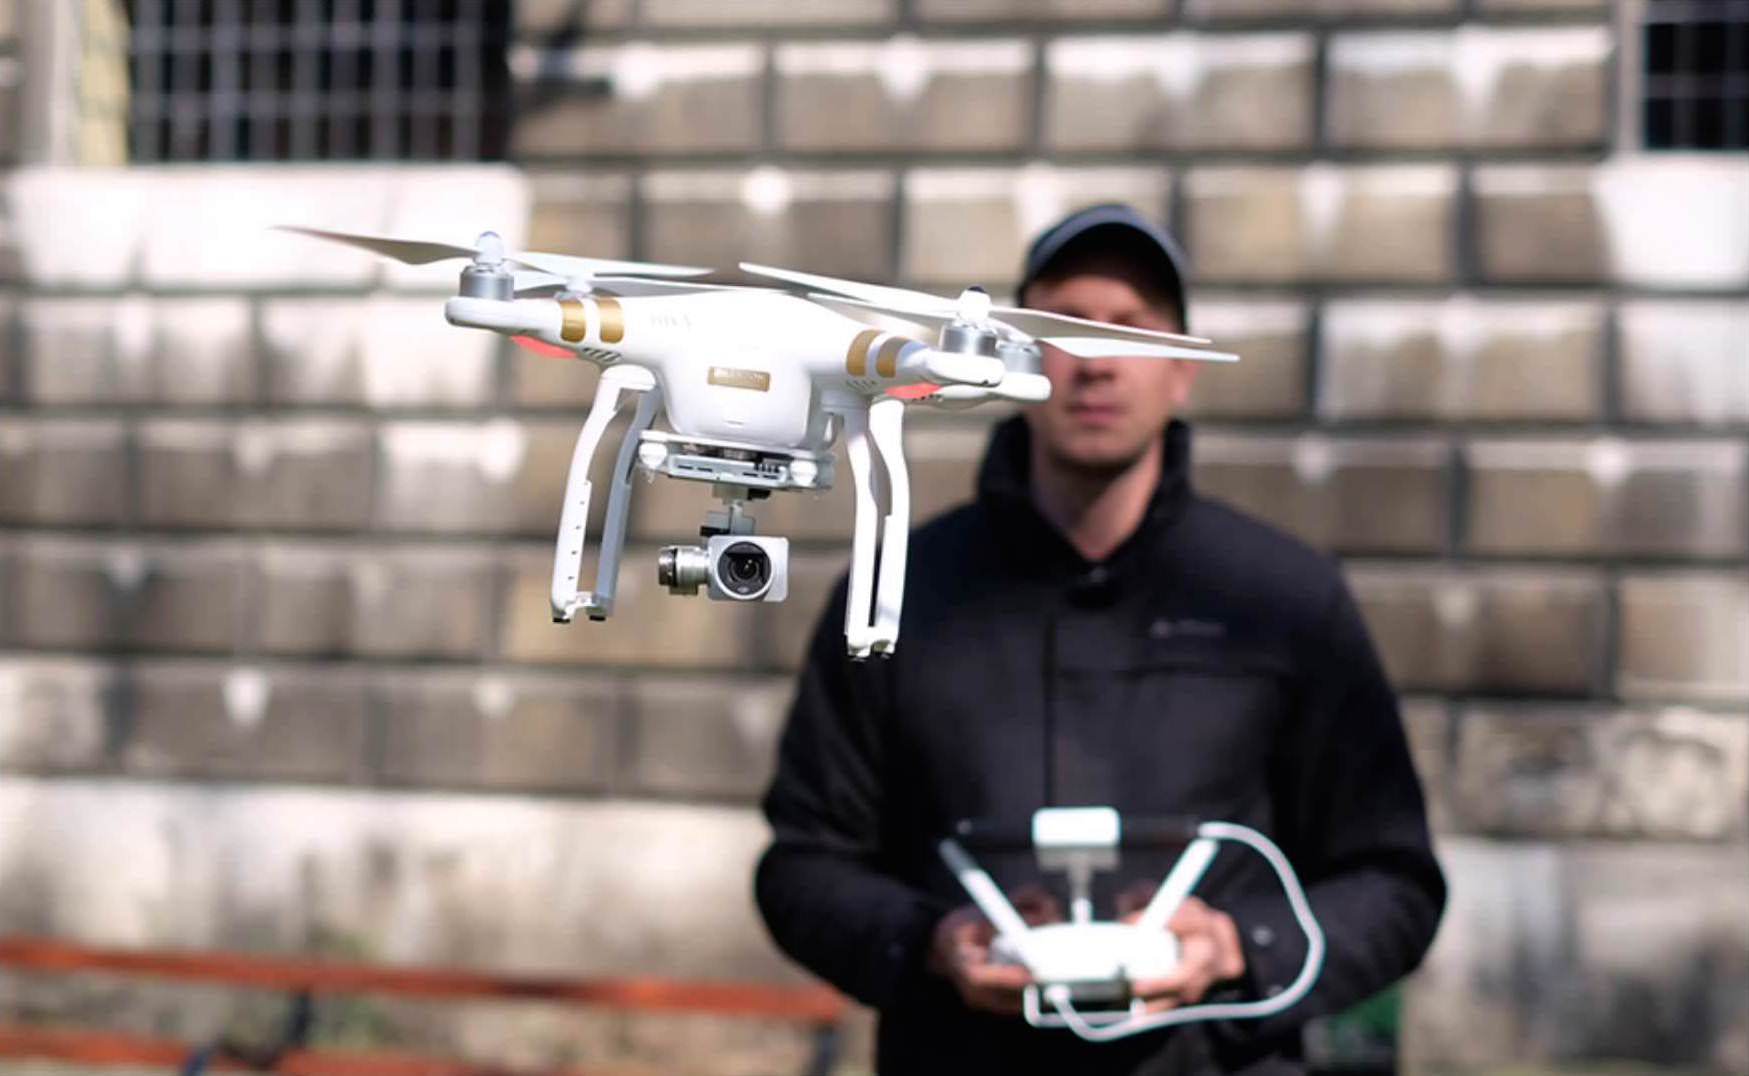 20 harmful tips for beginning drone pilot